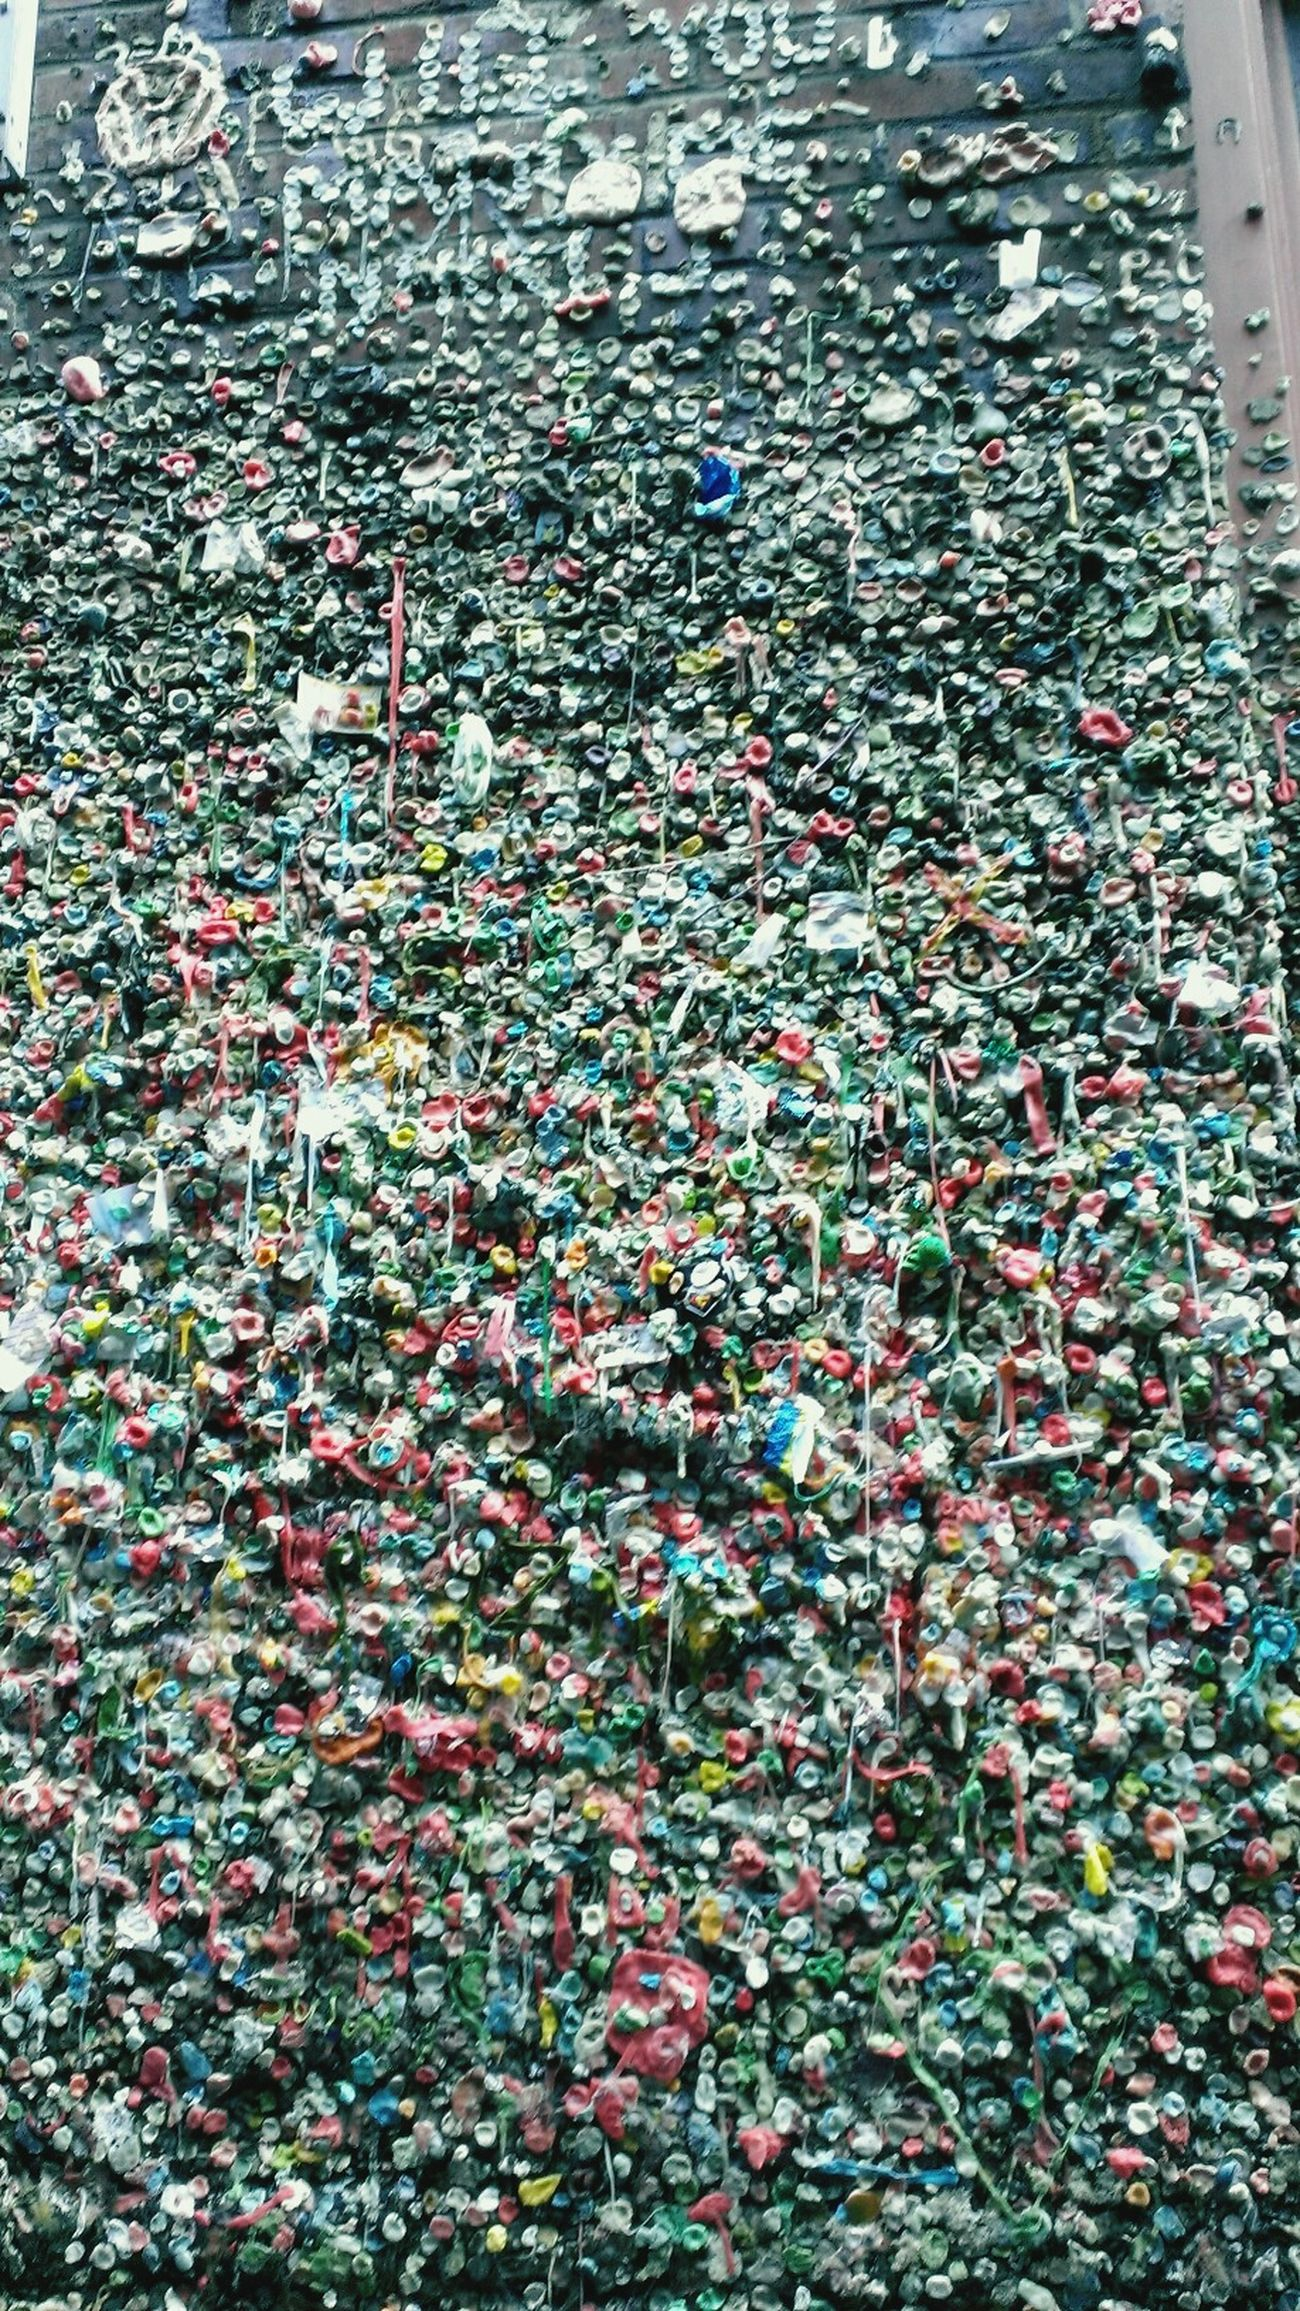 Seattle Adventure w/Dan..his pic. Gumwall So Many Memories Smiles